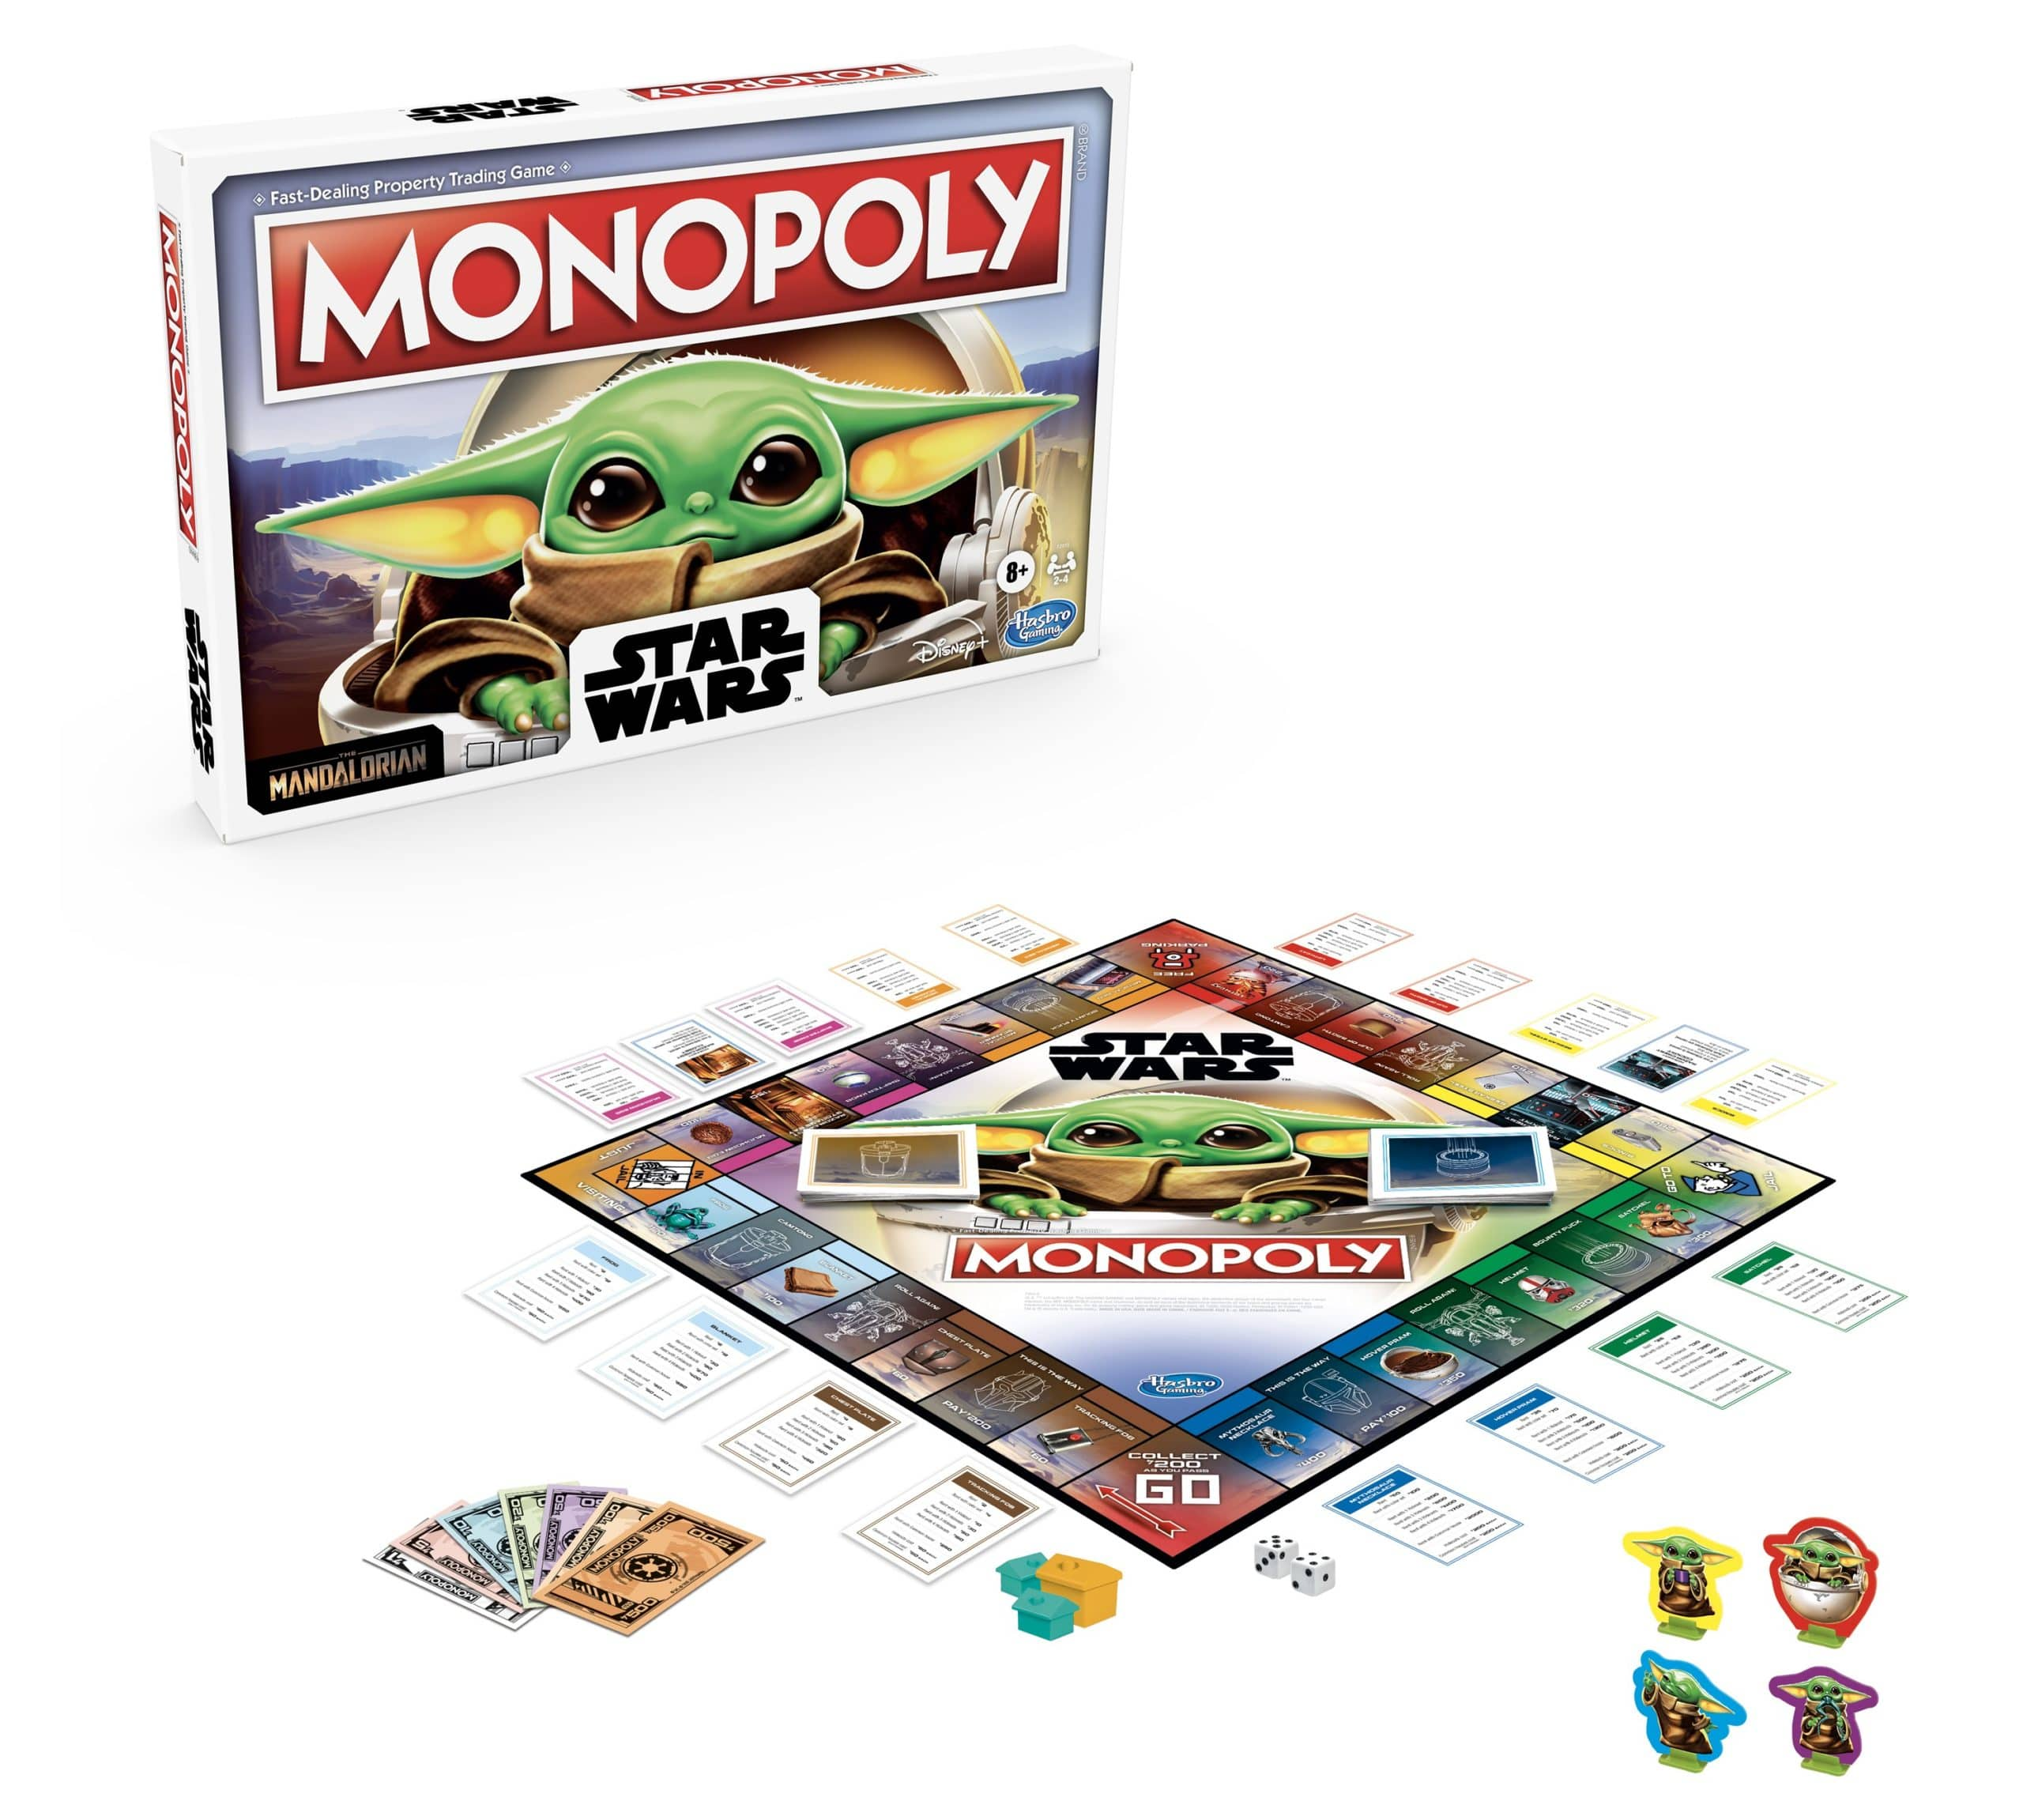 Baby Yoda gets their own Monopoly edition 13